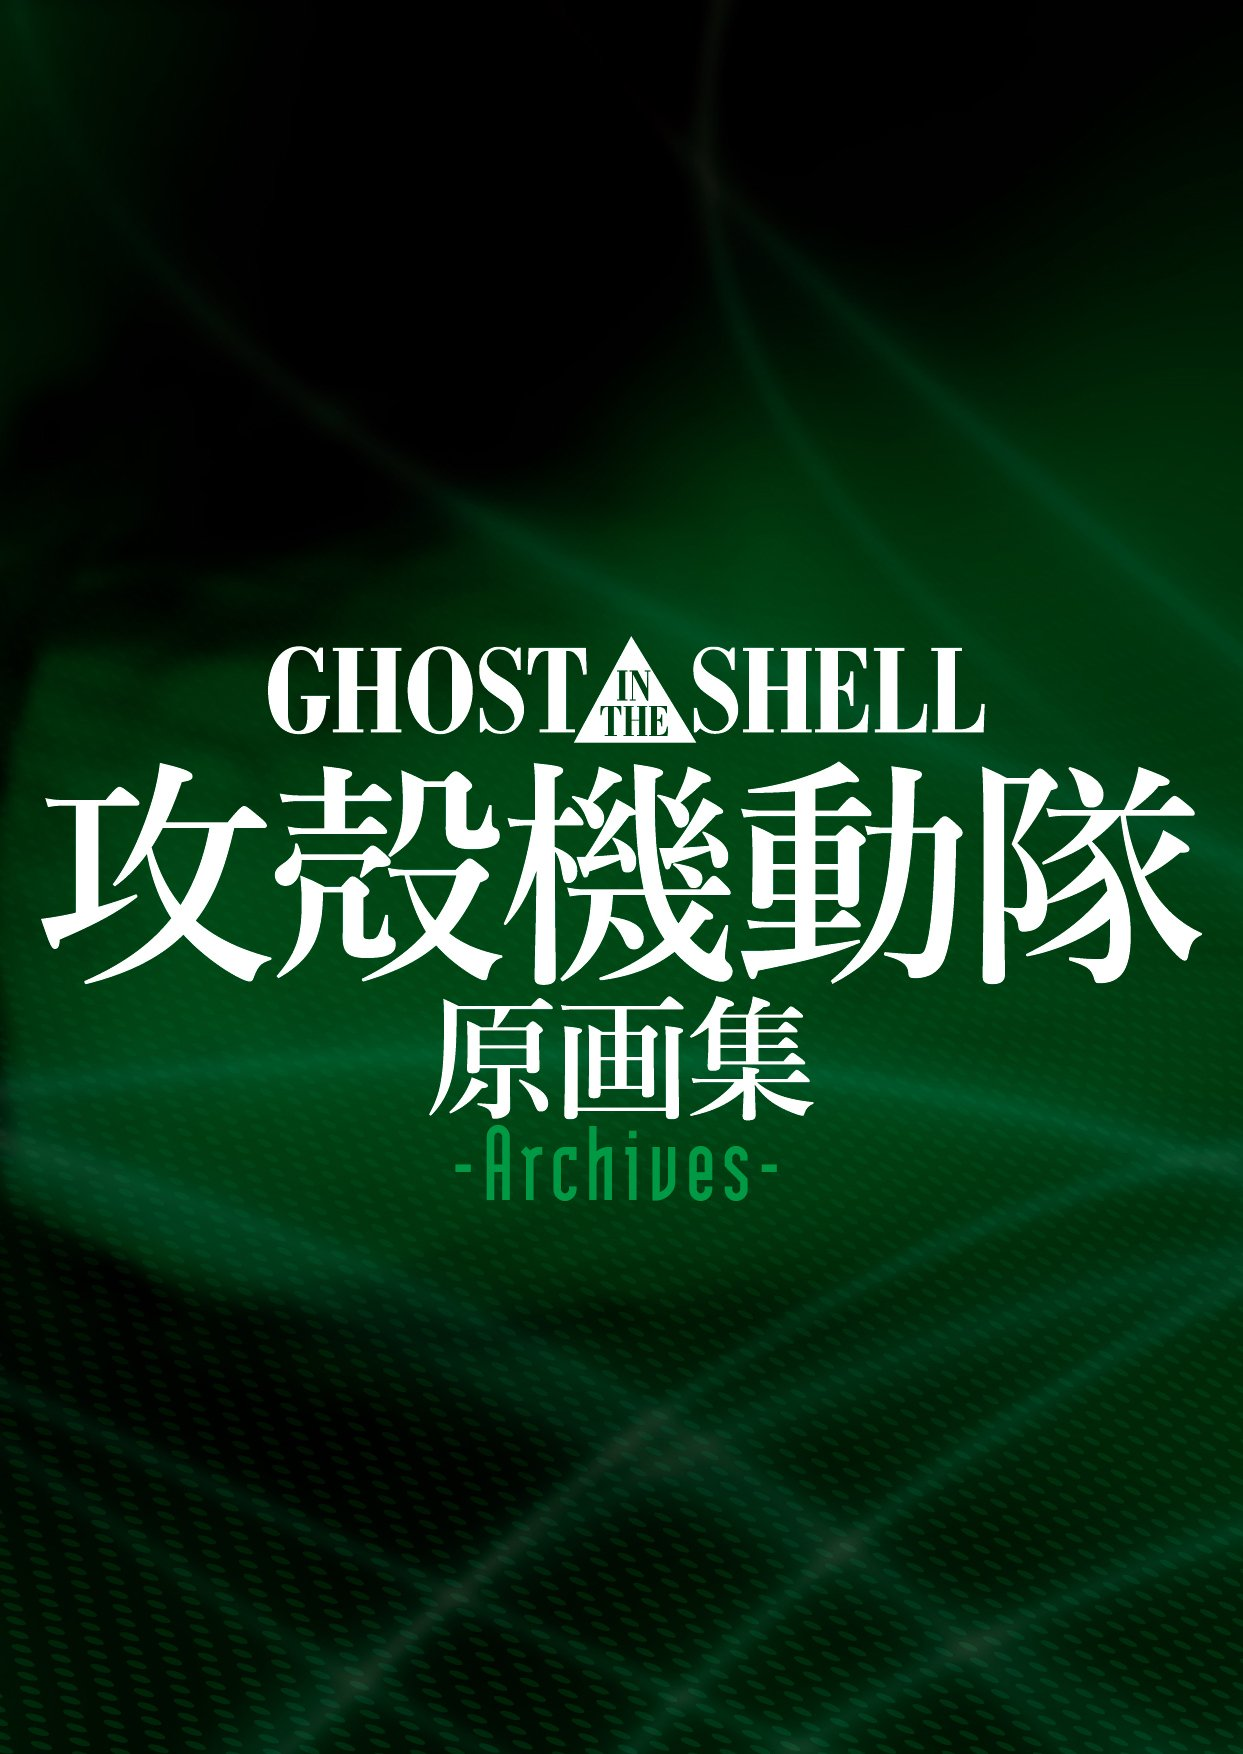 GHOST IN THE SHELL / 攻殻機動隊の画像 p1_38